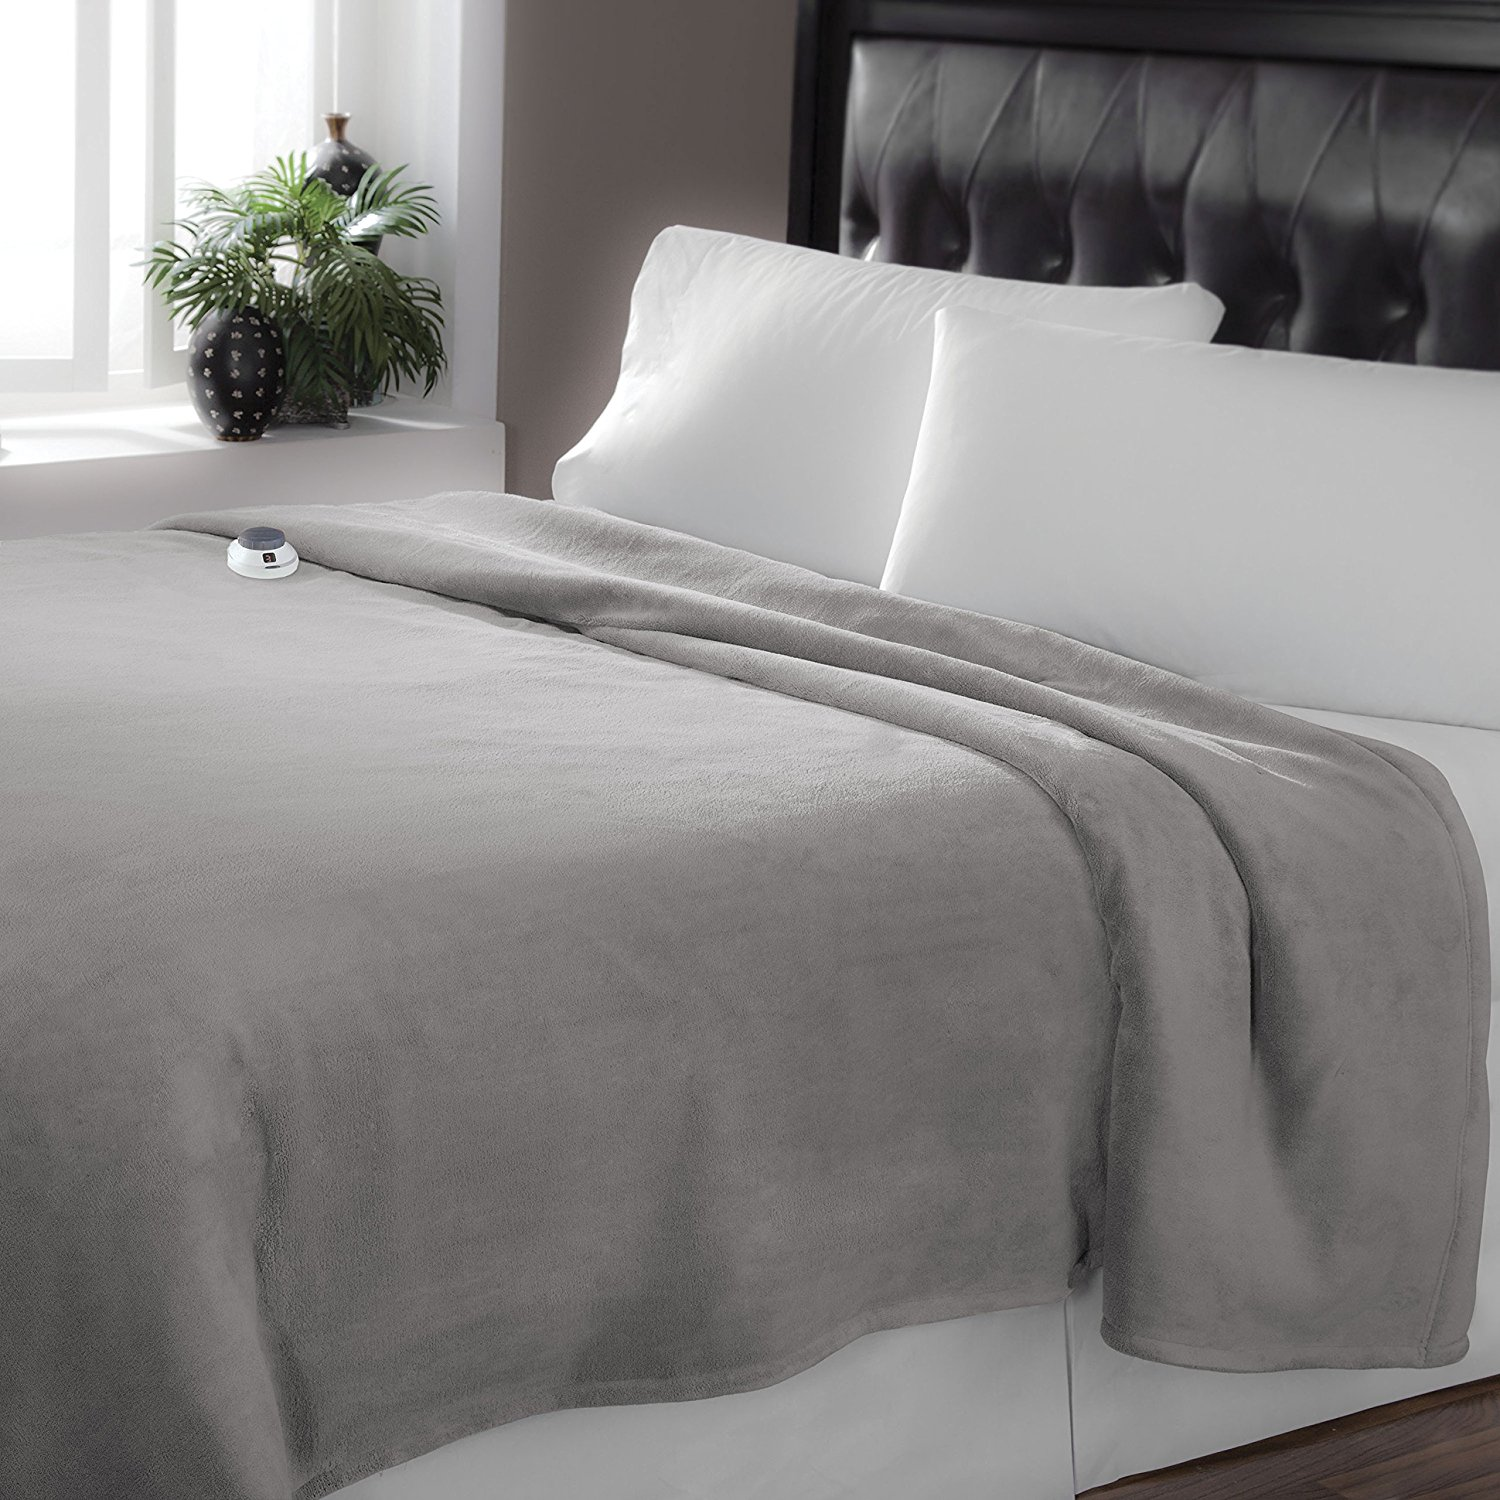 Soft Heat 856566 Low Voltage Heated Electric Luxe Plush Warming Blanket, King, Gray